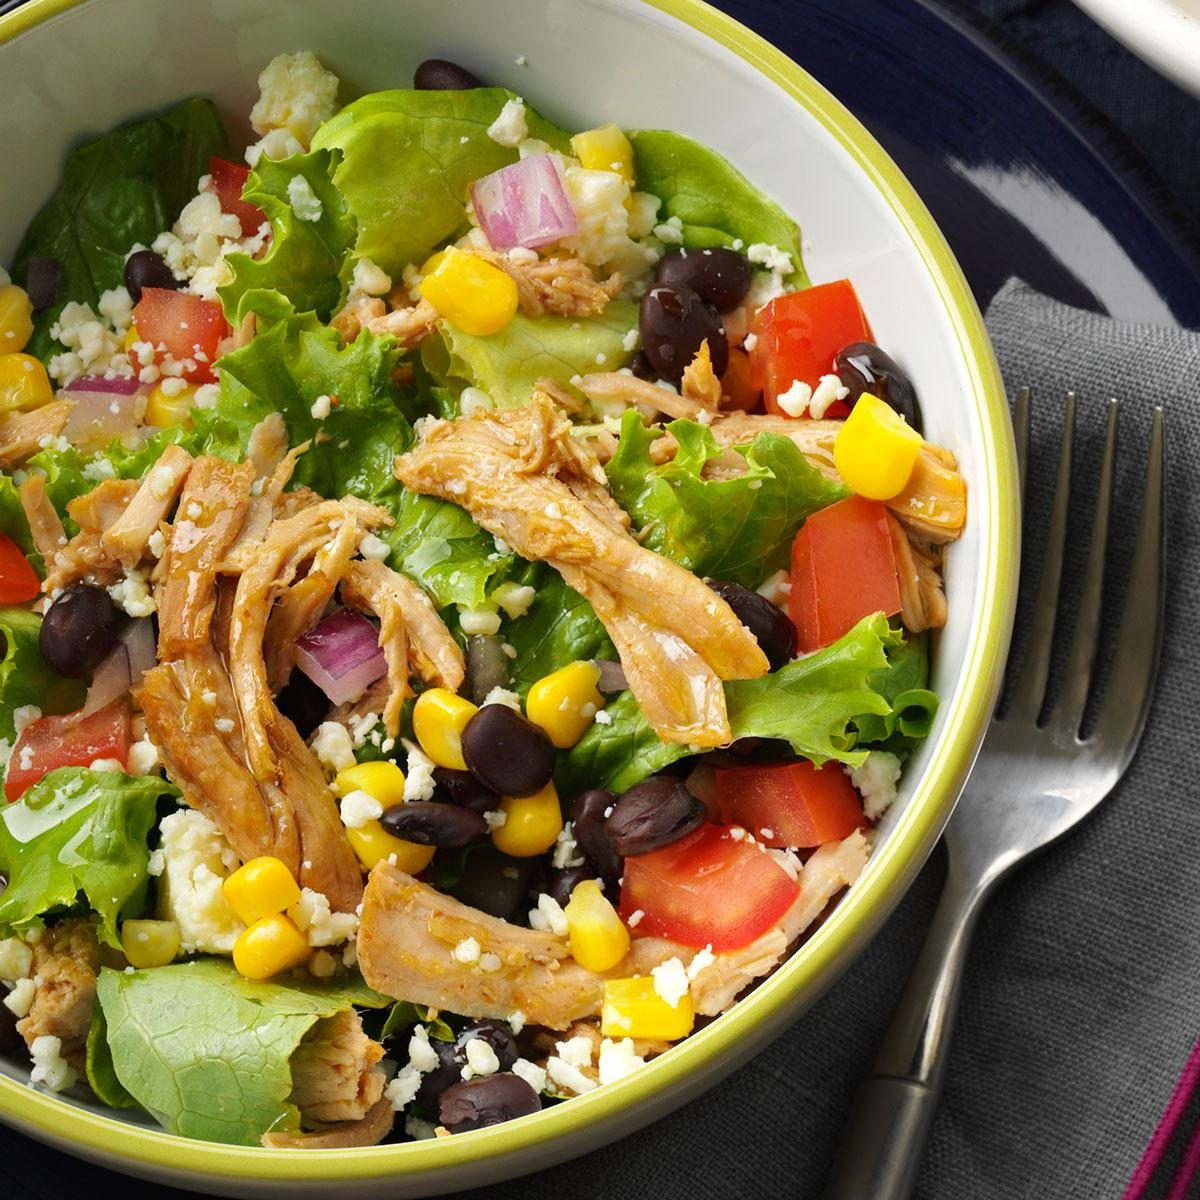 Inspired by: Chipotle's Carnitas Salad